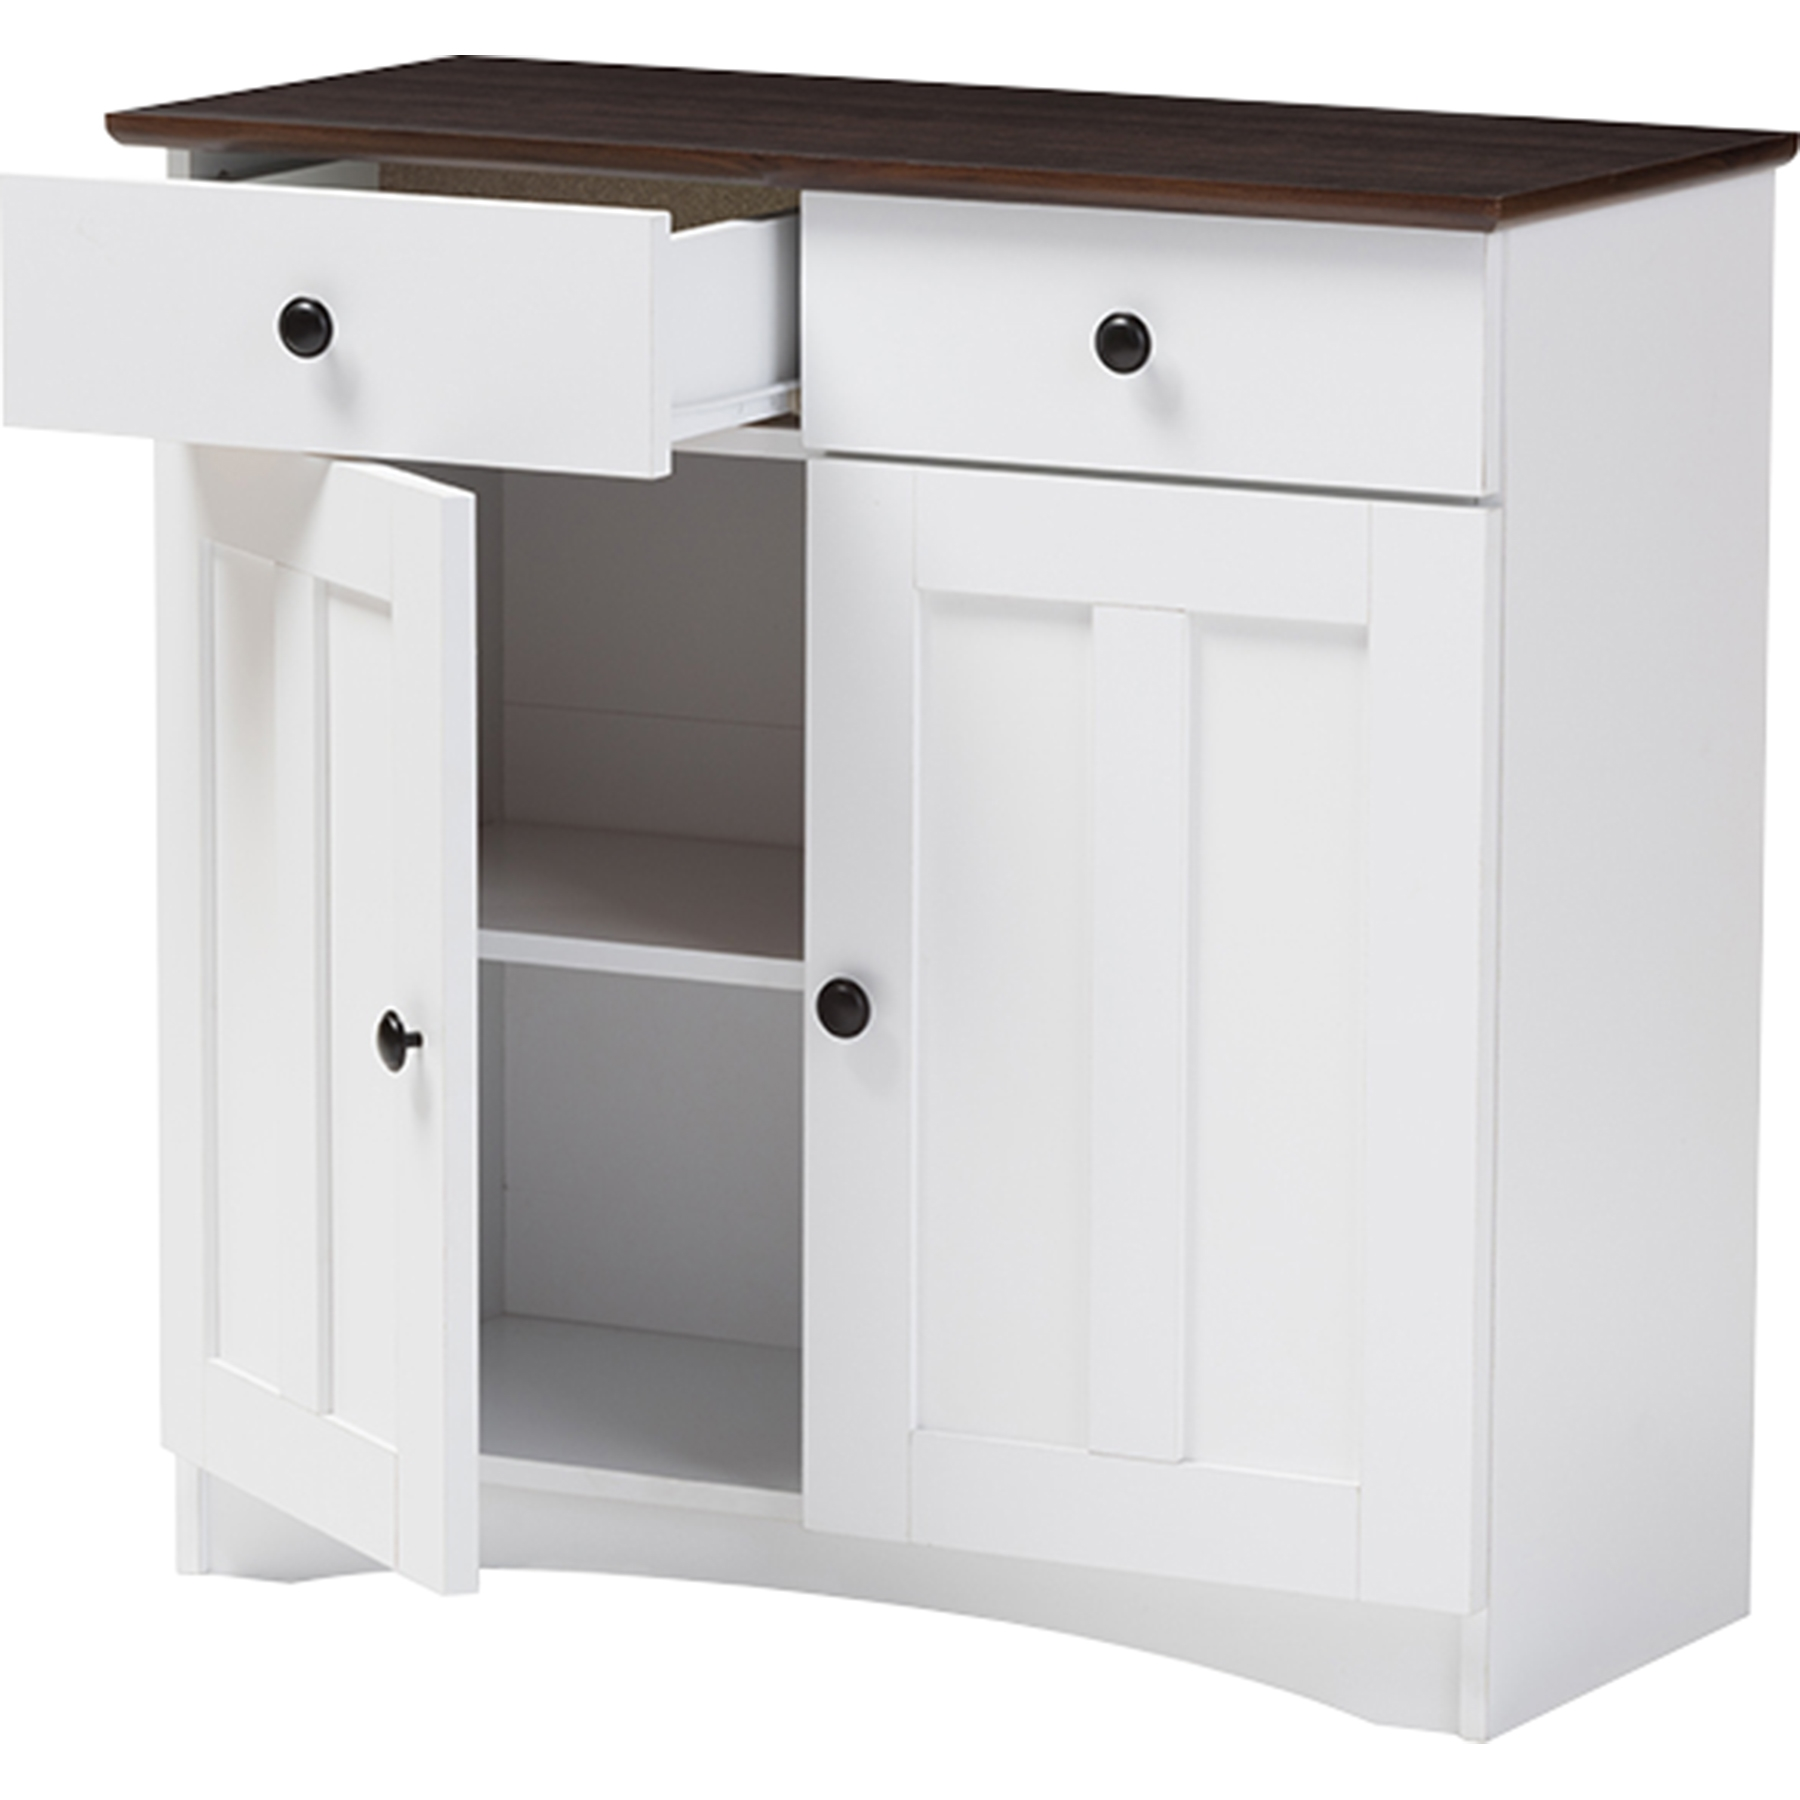 Buffet Kitchen Cabinet Lauren 2 Doors Buffet Kitchen Cabinet White Wenge